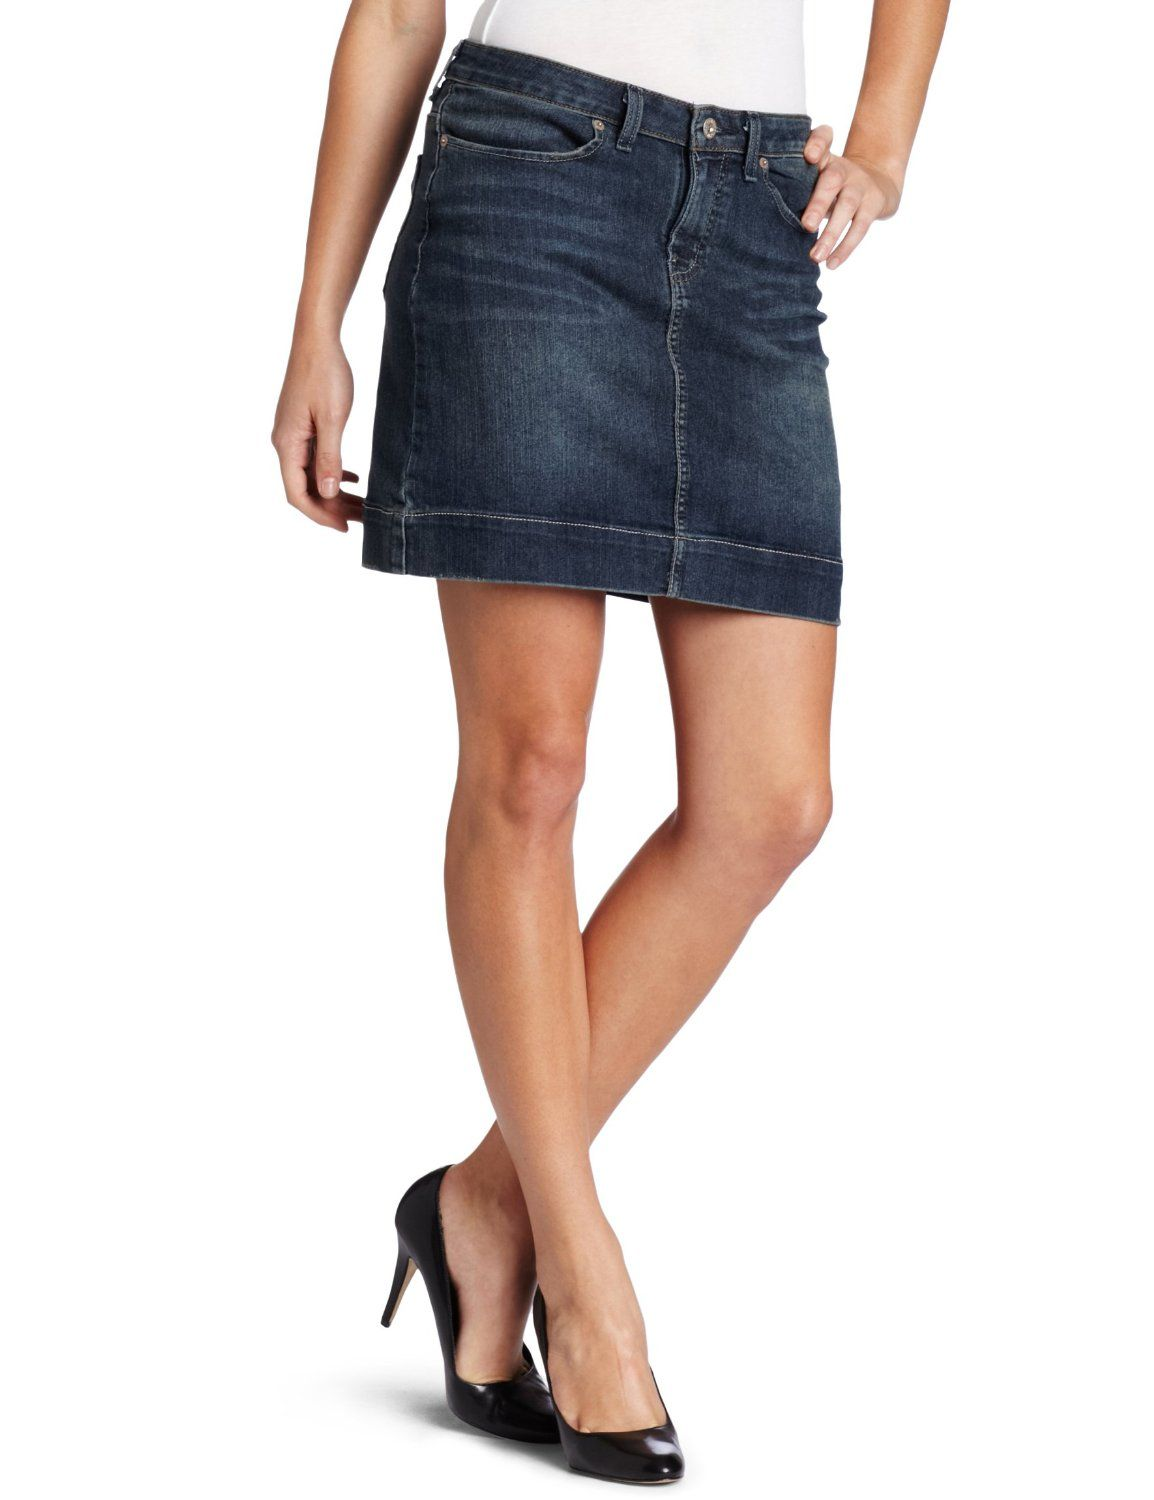 Women'S Denim Skirts Sale - Dress Ala